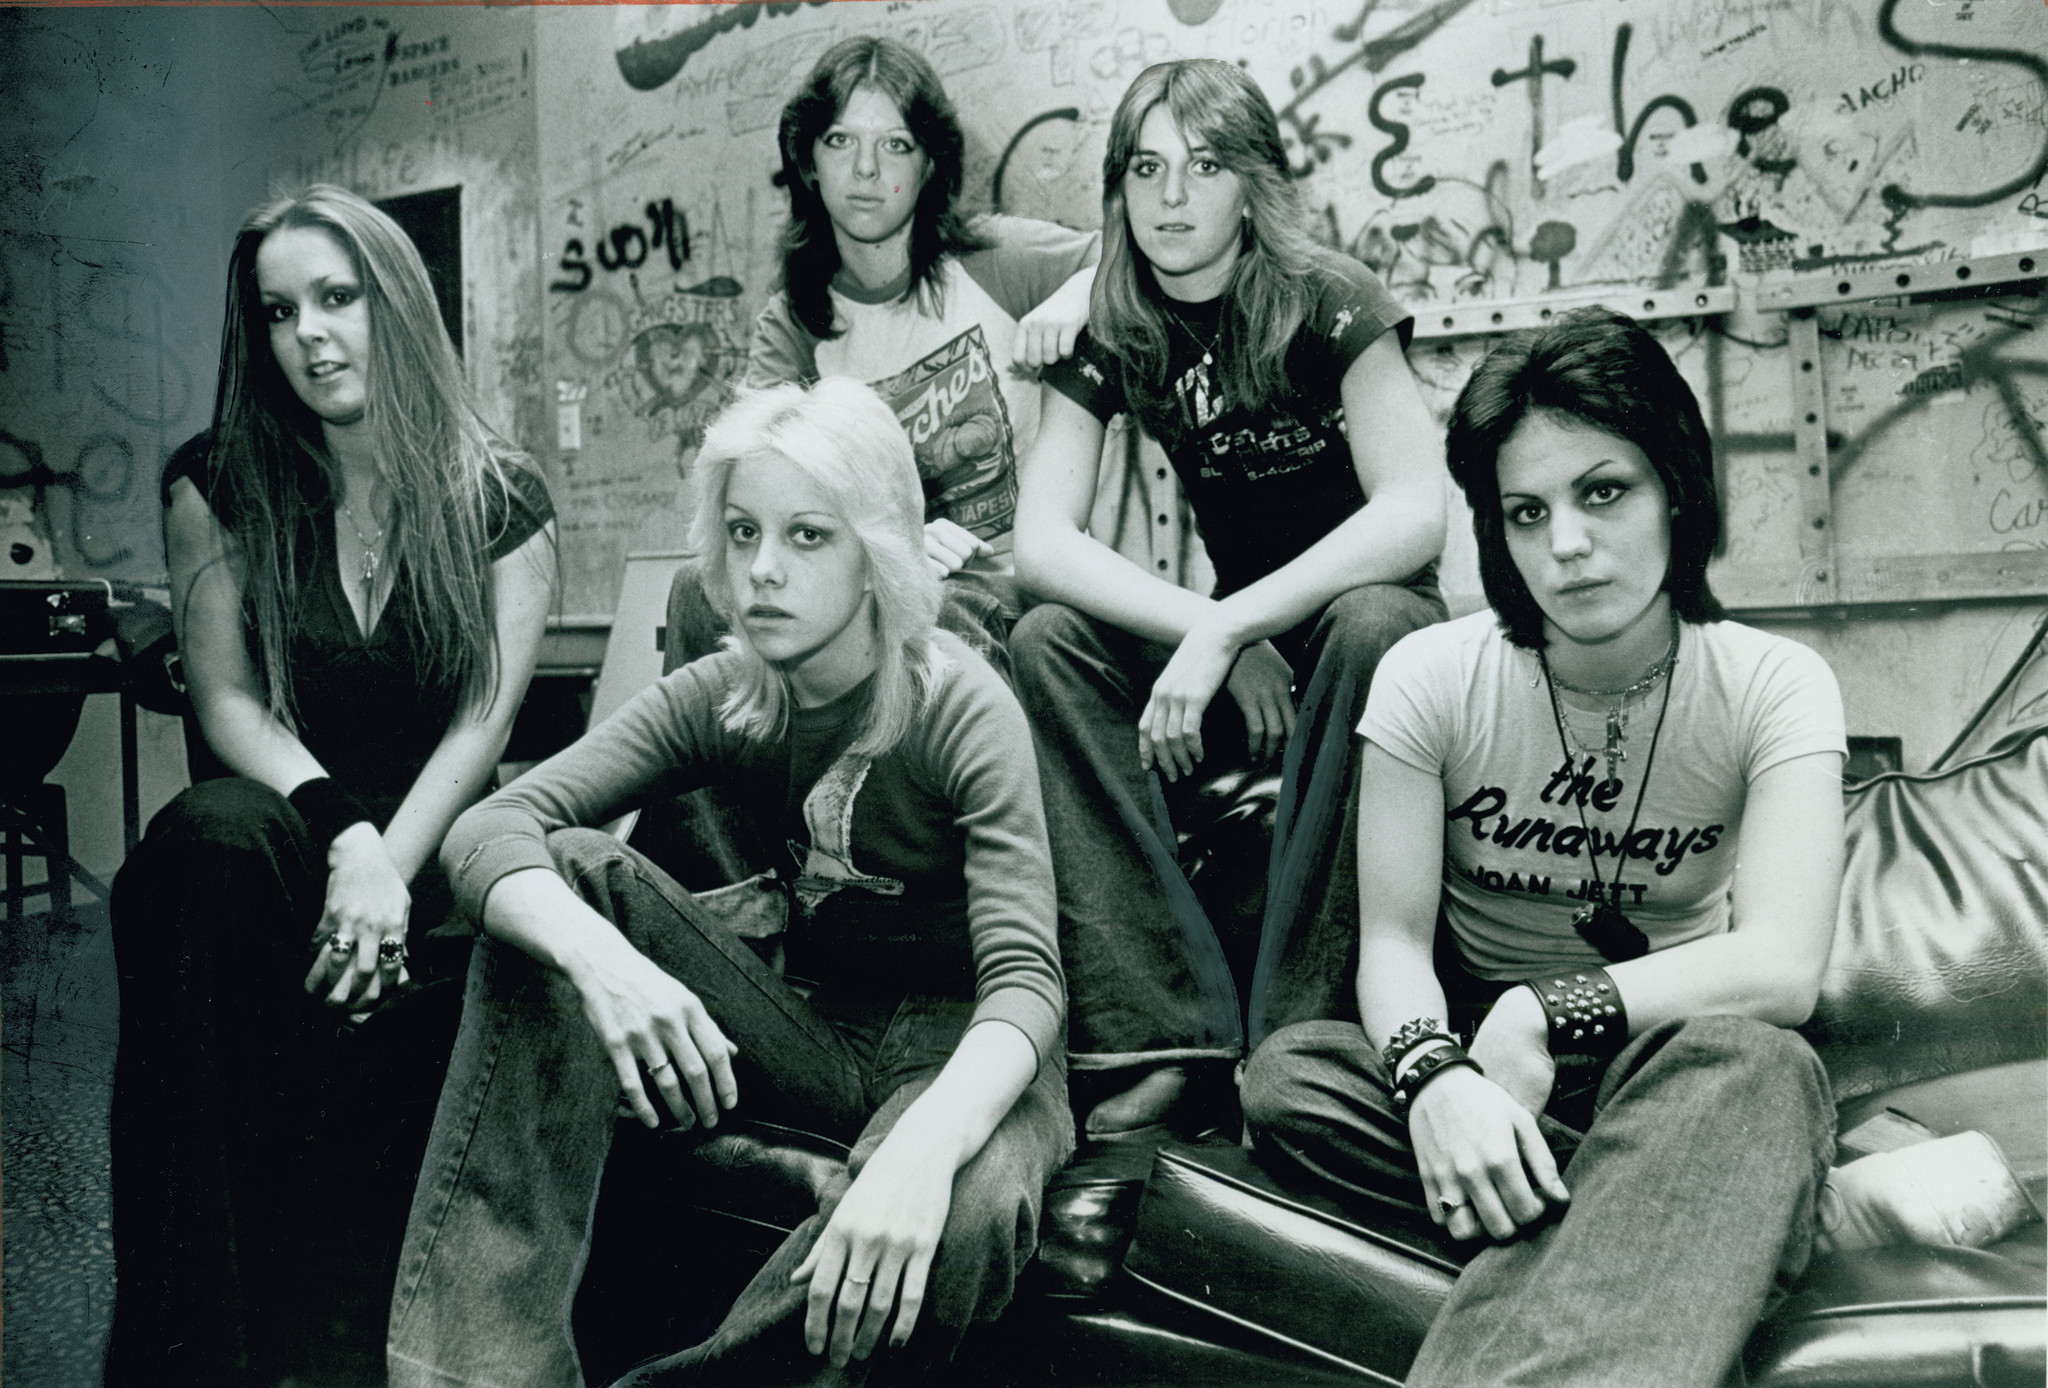 The Runaways, from left, Lita Ford, Cherie Currie, Jackie Fox, Sandy West and Joan Jett in the Whisky s dressing room in 1977.